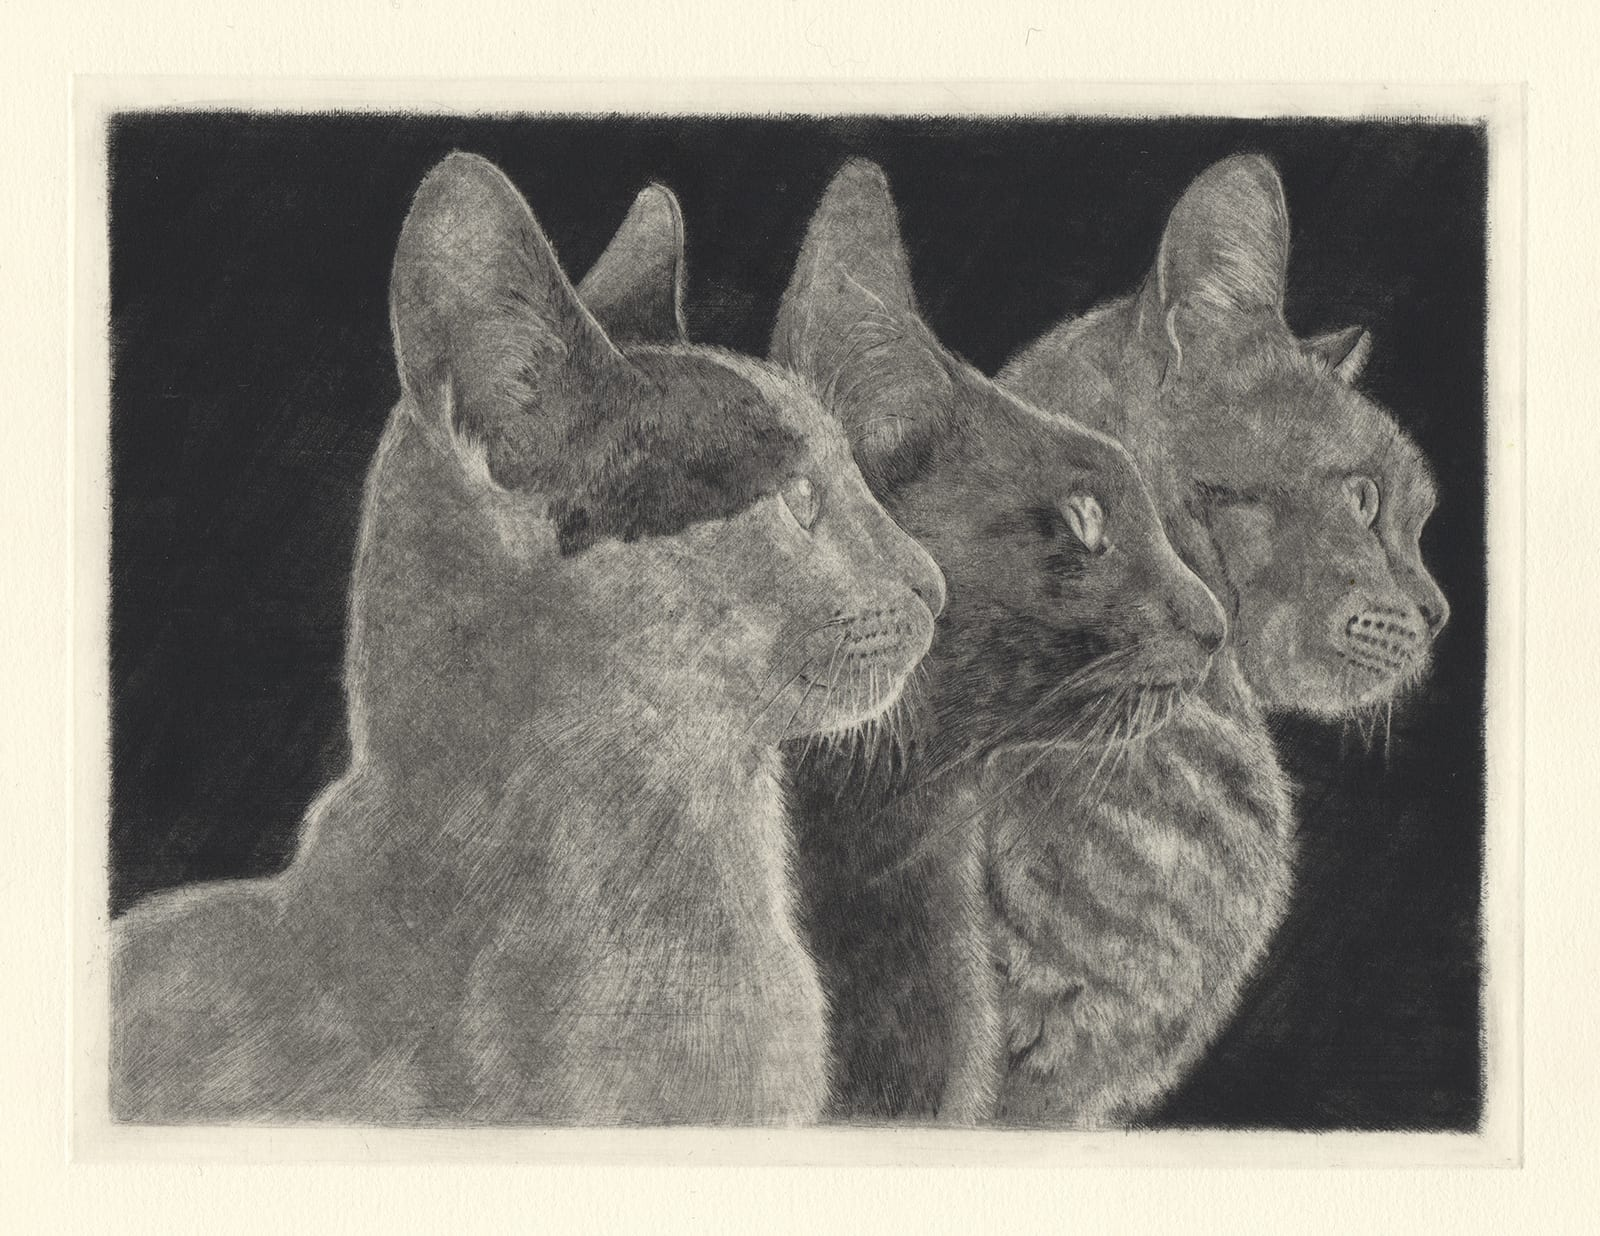 Seeing Farther (Generations) (drypoint etching by Yaemi Shigyo)